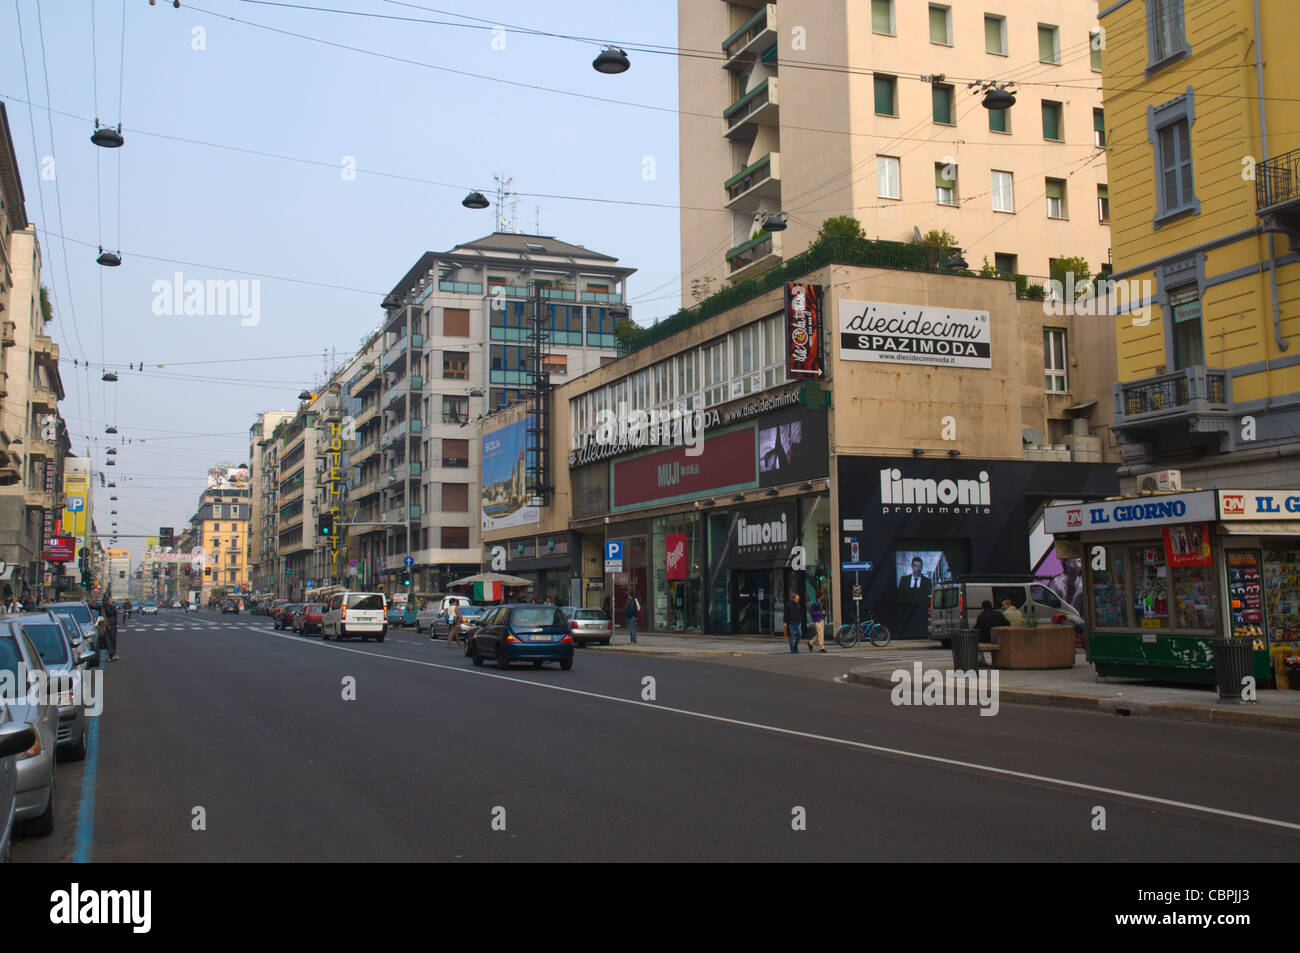 Corso Buenos Aires street Milan Lombardy region Italy Europe - Stock Image